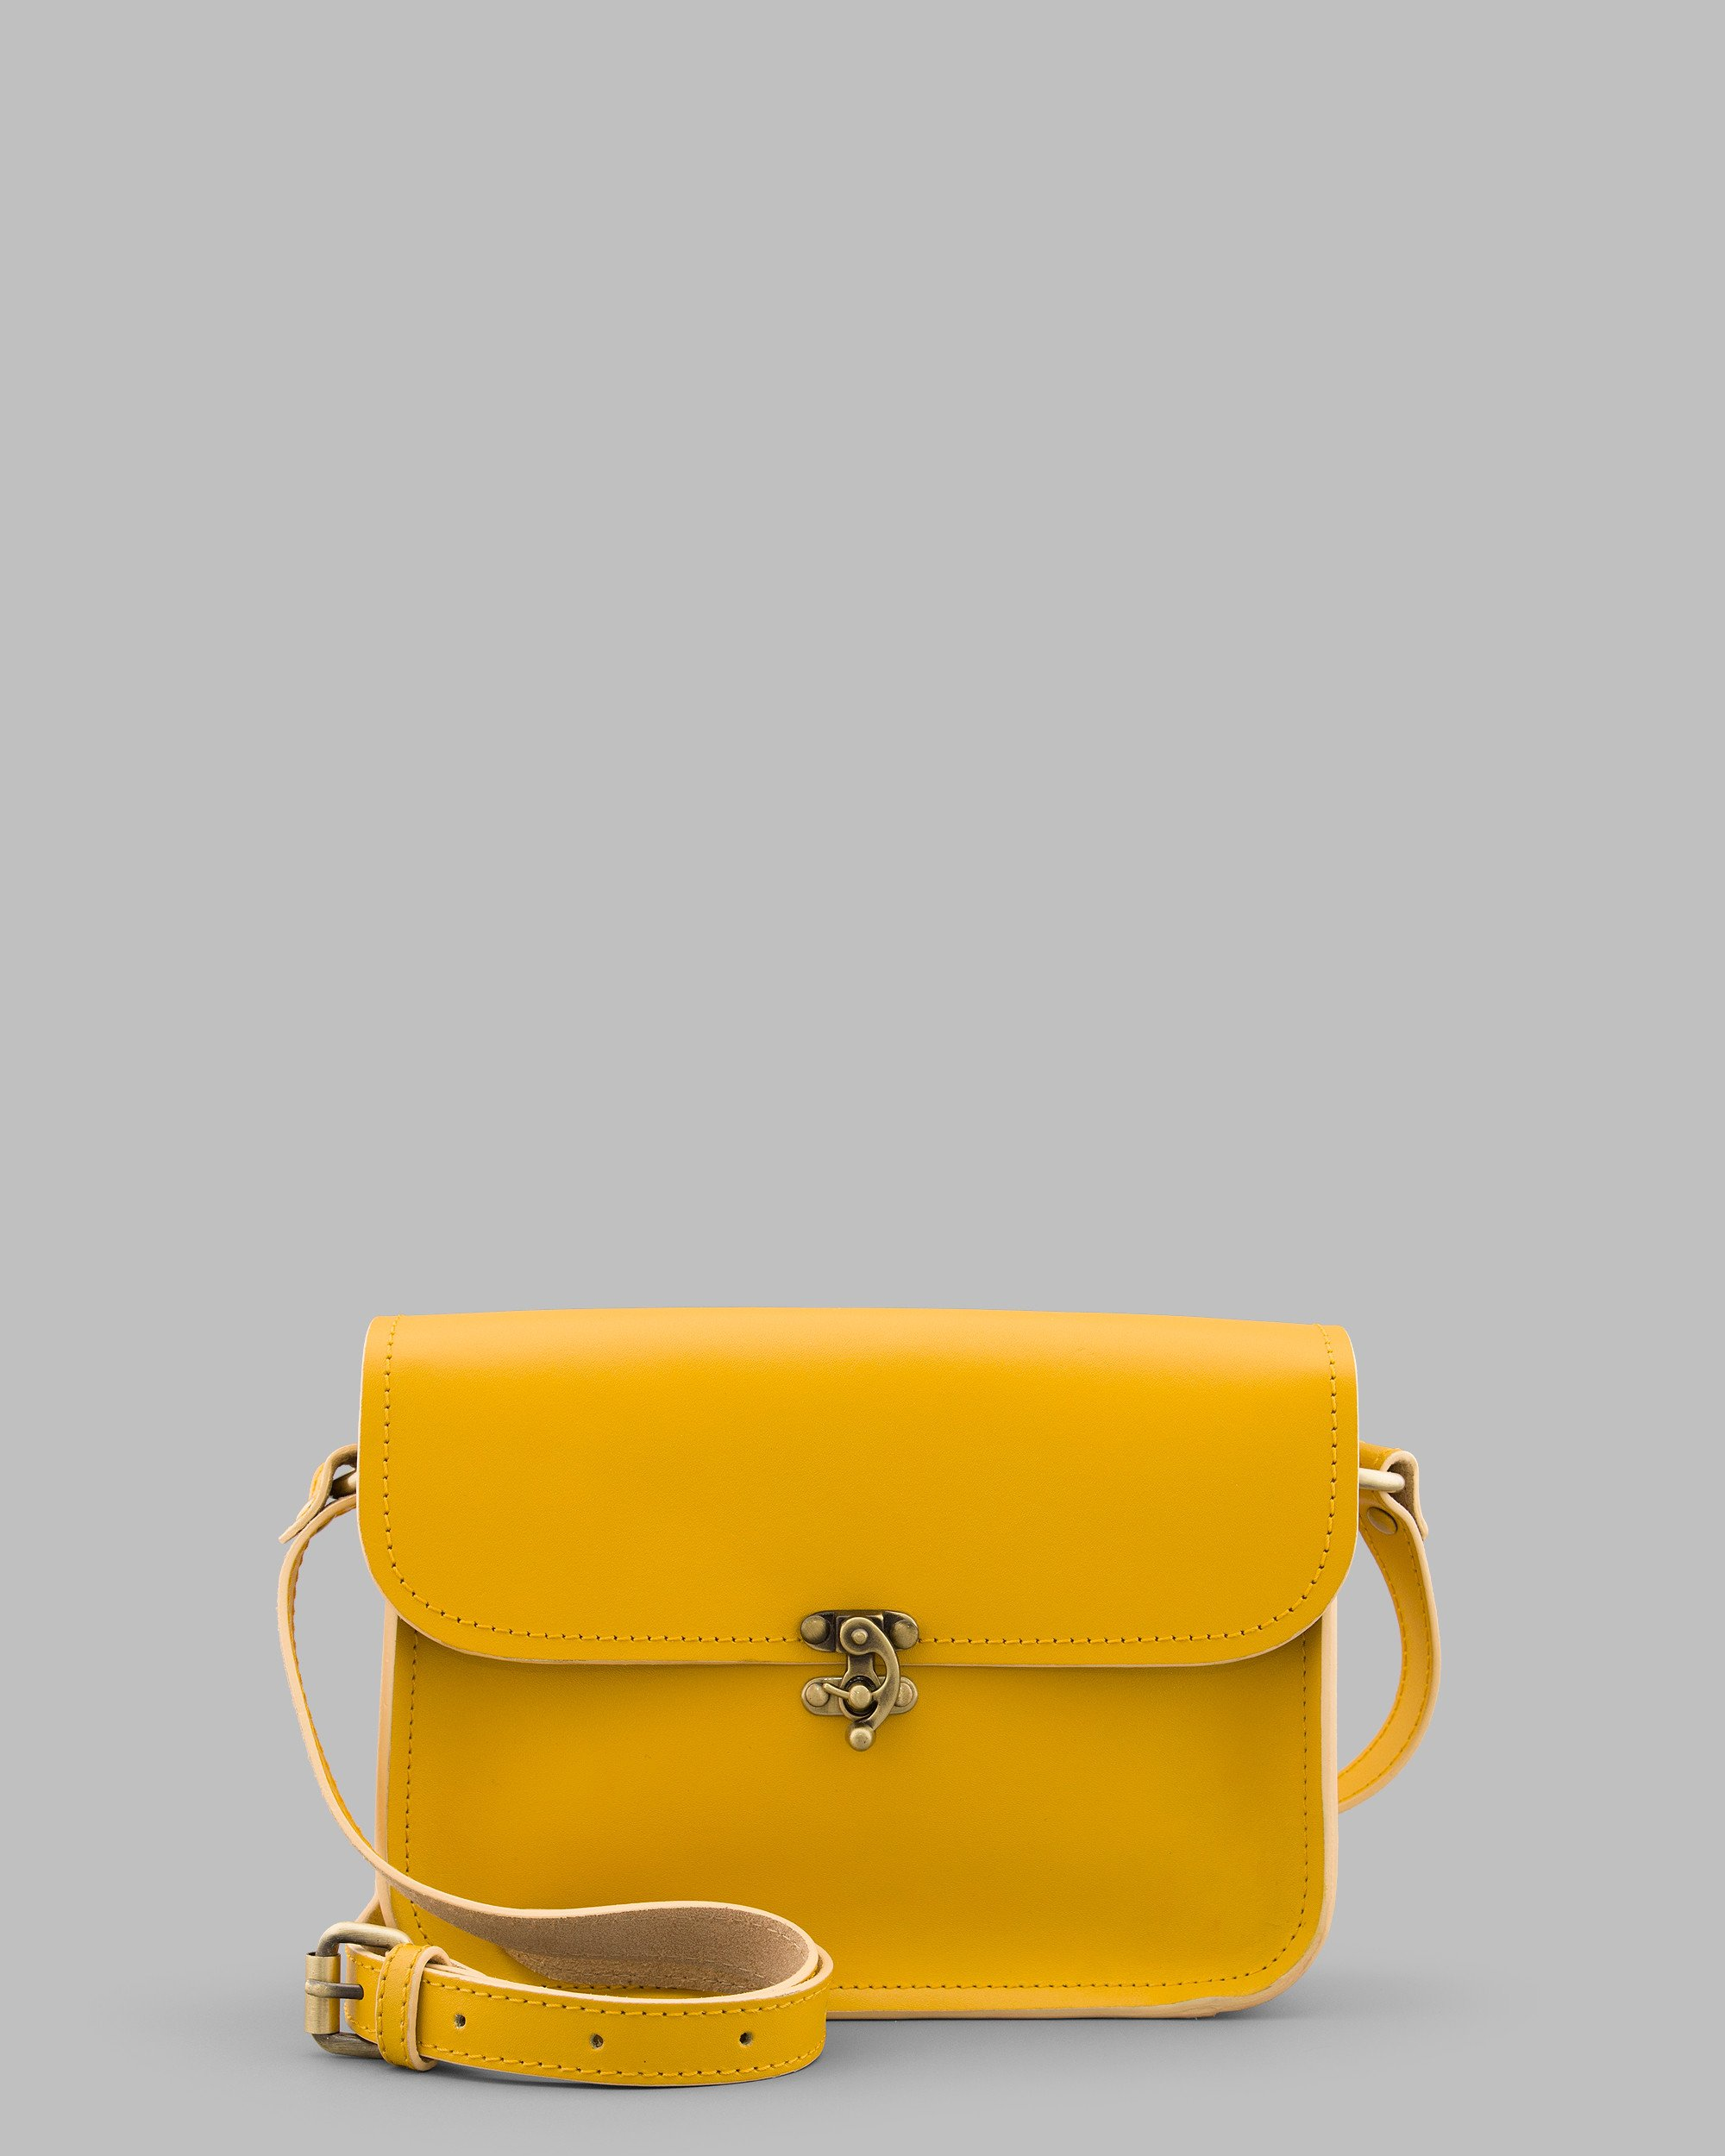 Free Photo Yellow Bag Sell Sale Retail Free Download Jooinn